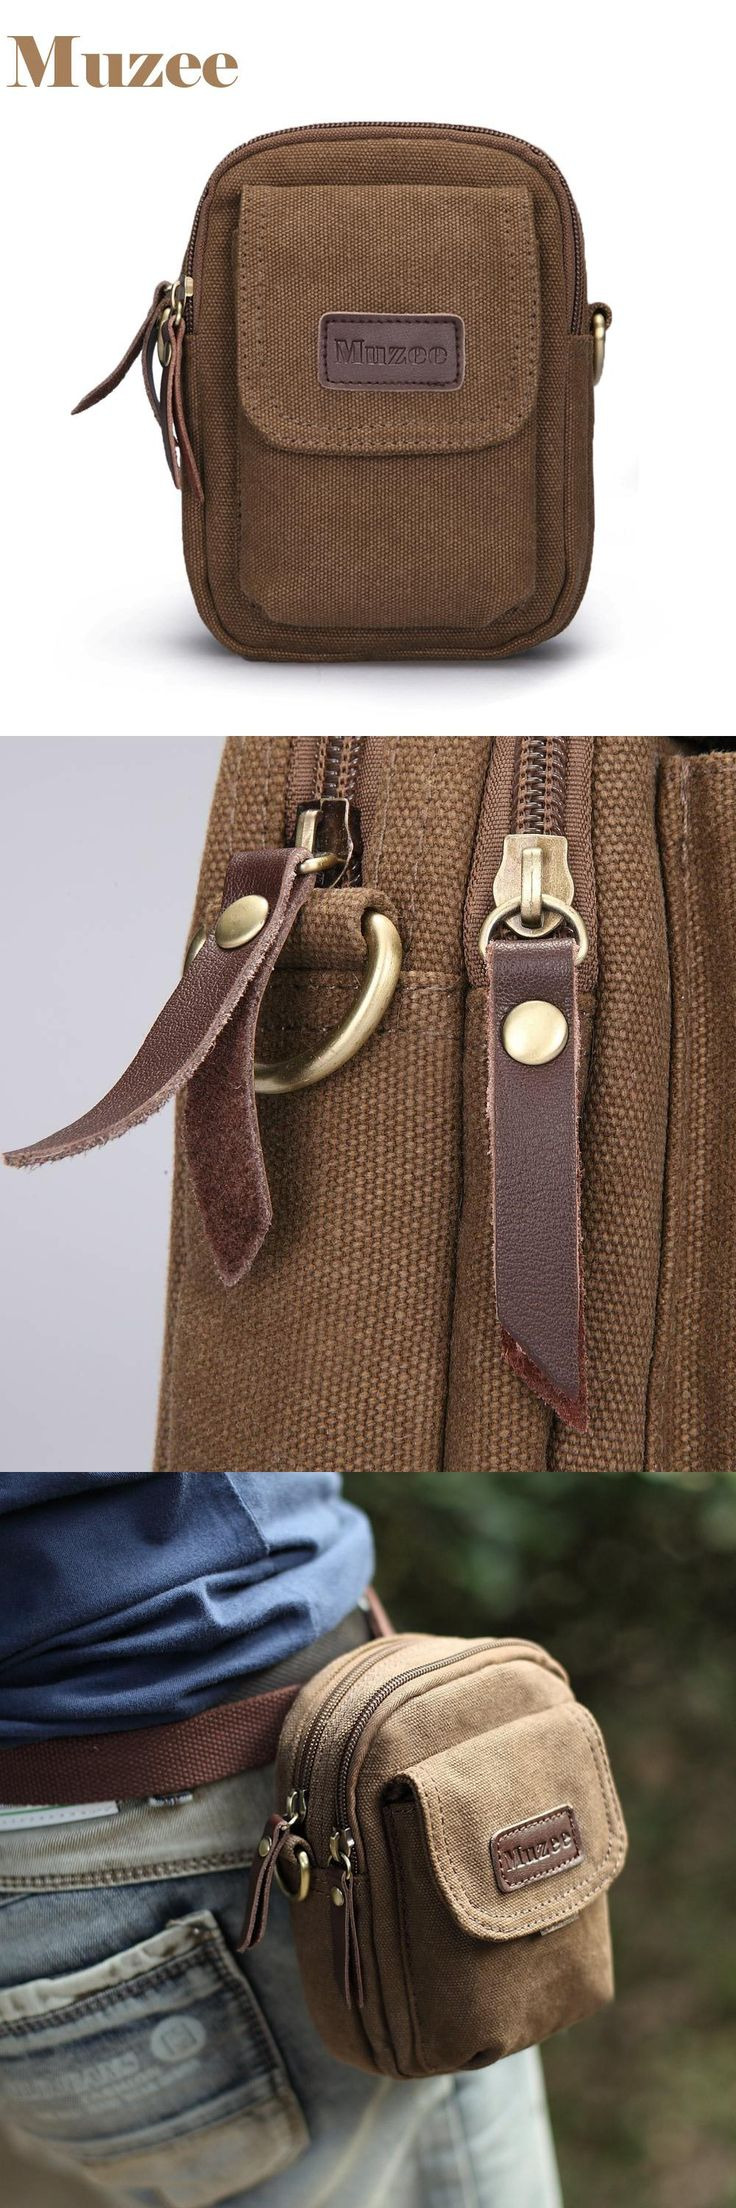 [Visit to Buy] Free shipping! high quality canvas waist packs vintage small bag fanny pack belt wallets single bags,muzee brand #Advertisement